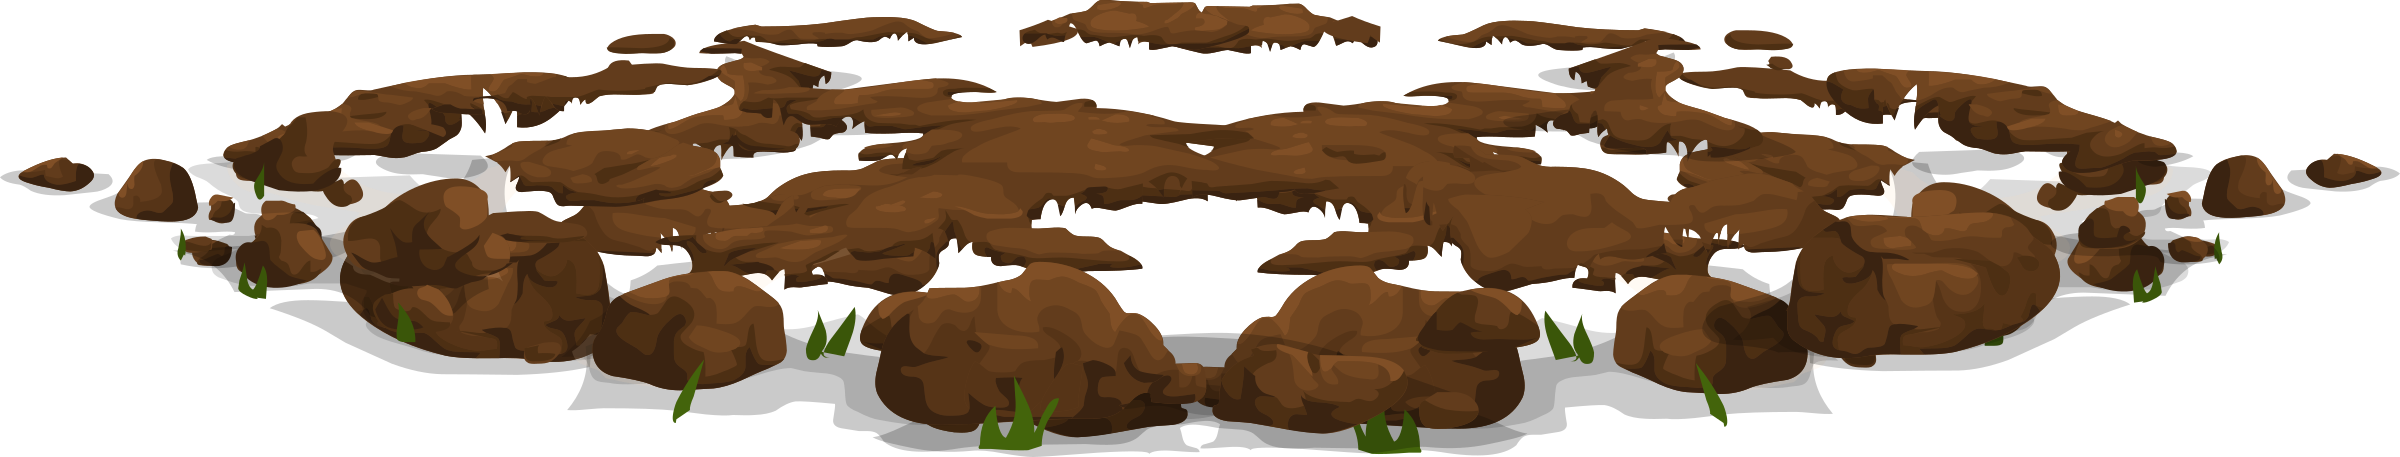 Mud clipart dirt pile #9